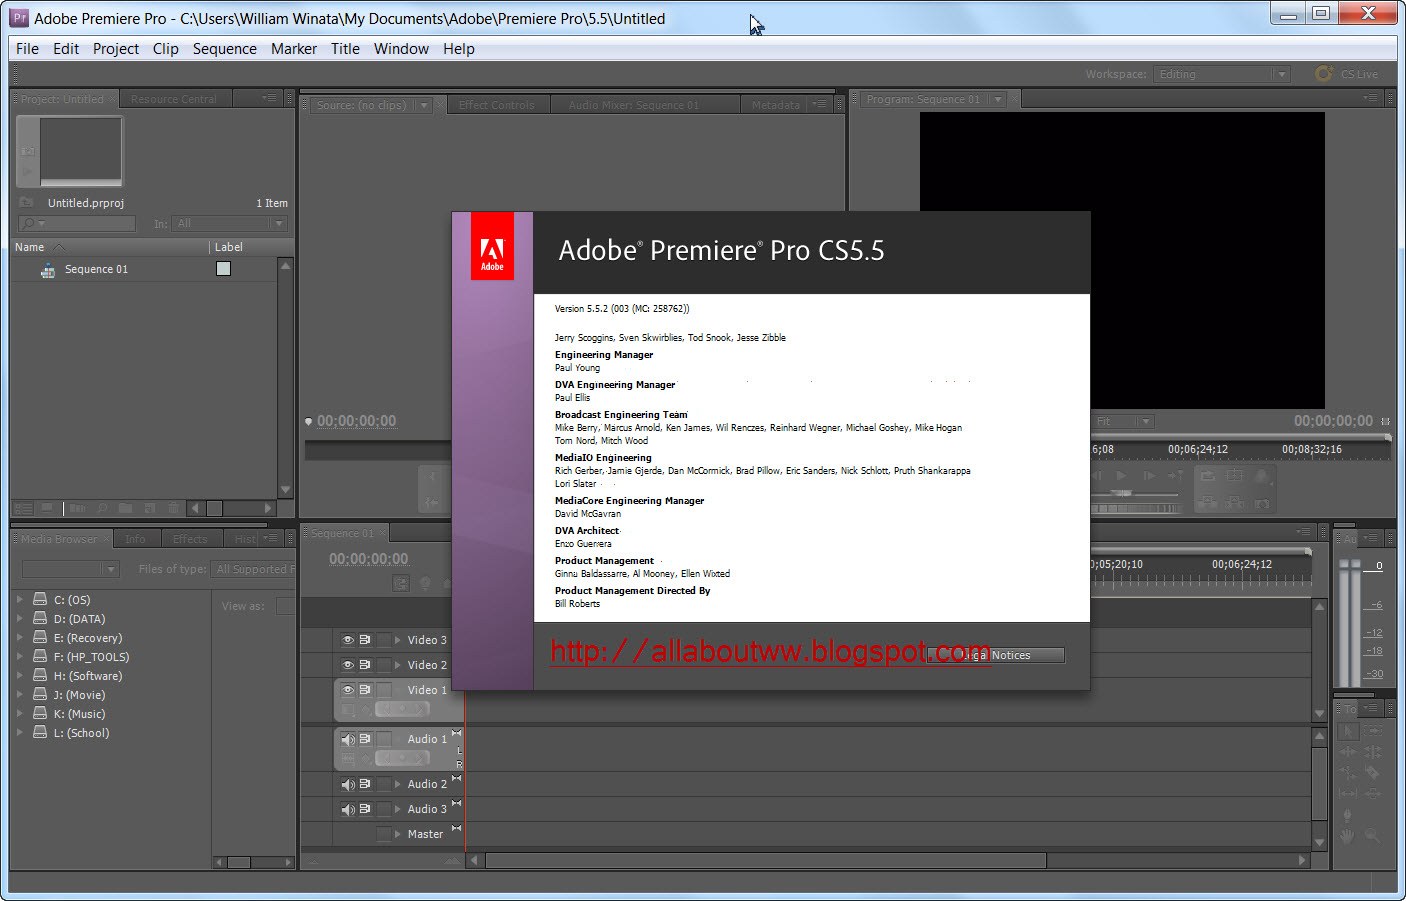 adobe premiere pro cs5.5 keygen crack